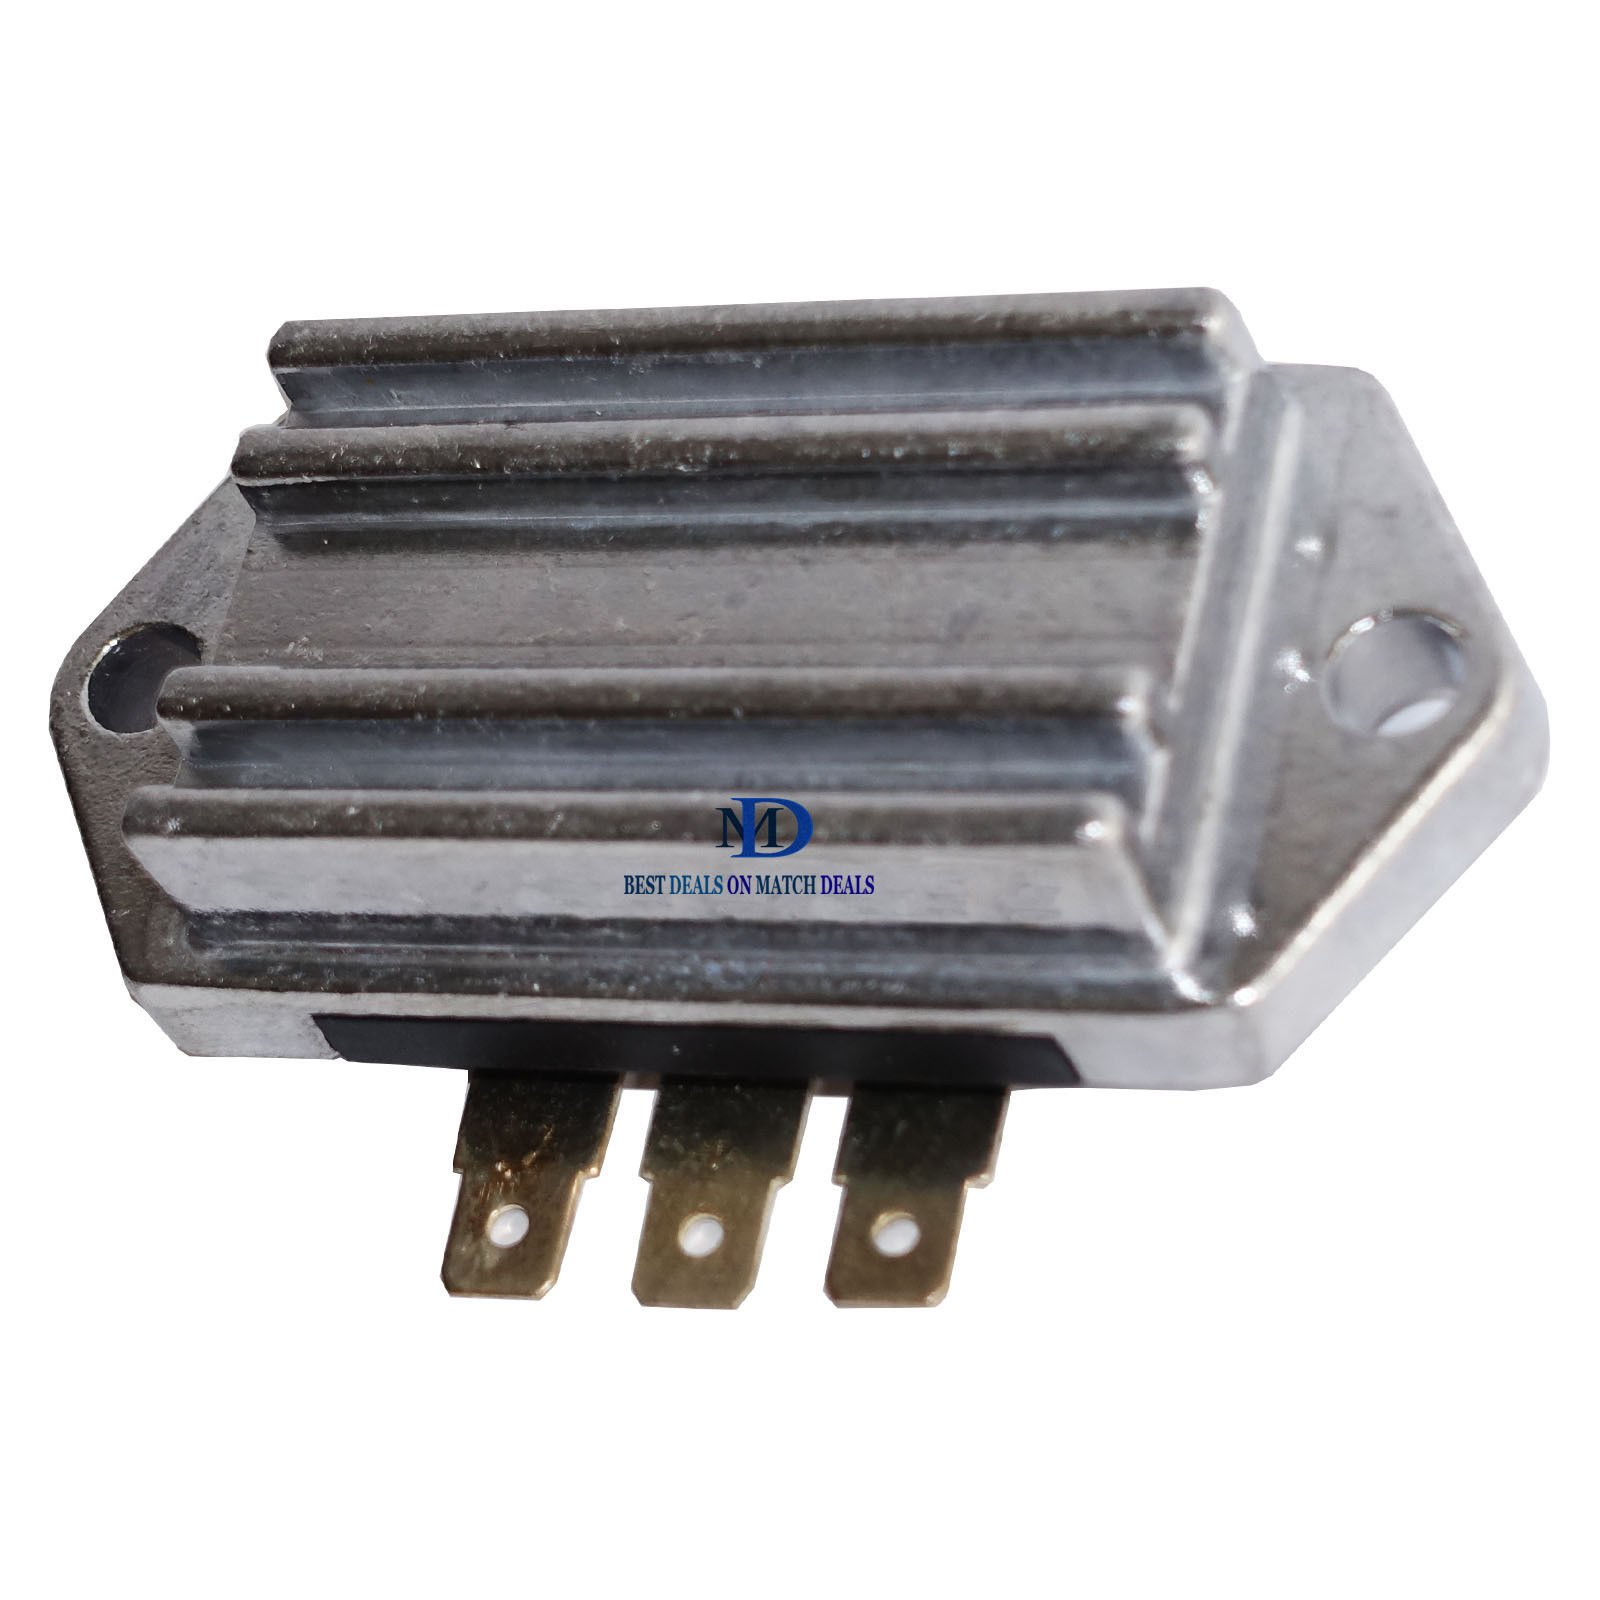 (Ship from USA) VOLTAGE REGULATOR RECTIFIER FOR JOHN DEERE AM34738 AM106357 AM102596 /ITEM NO#8Y-IFW81854167365 by Rosotion